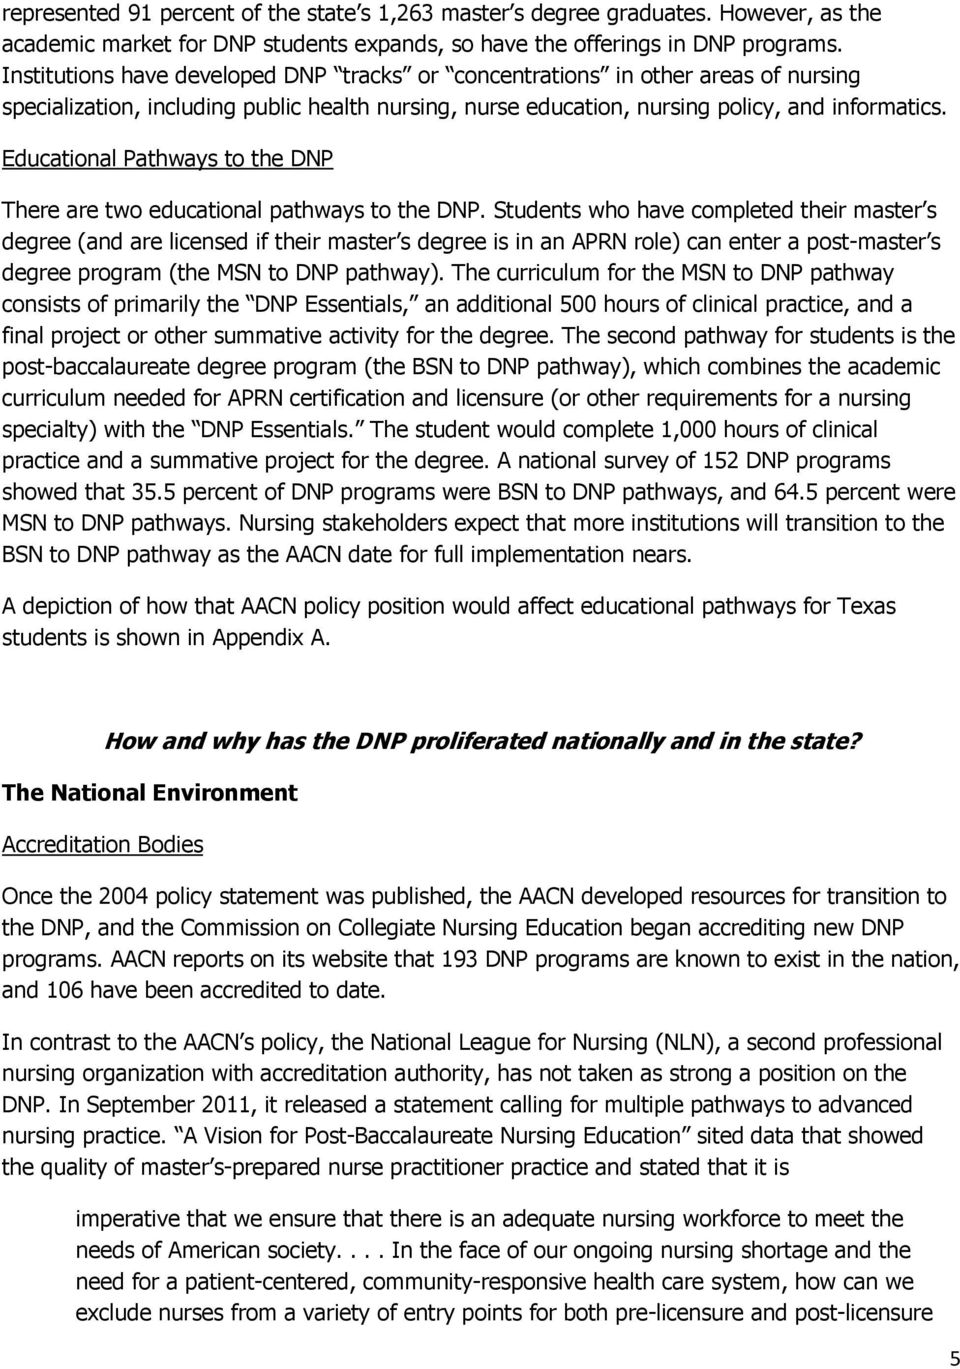 Educational Pathways to the DNP There are two educational pathways to the DNP.